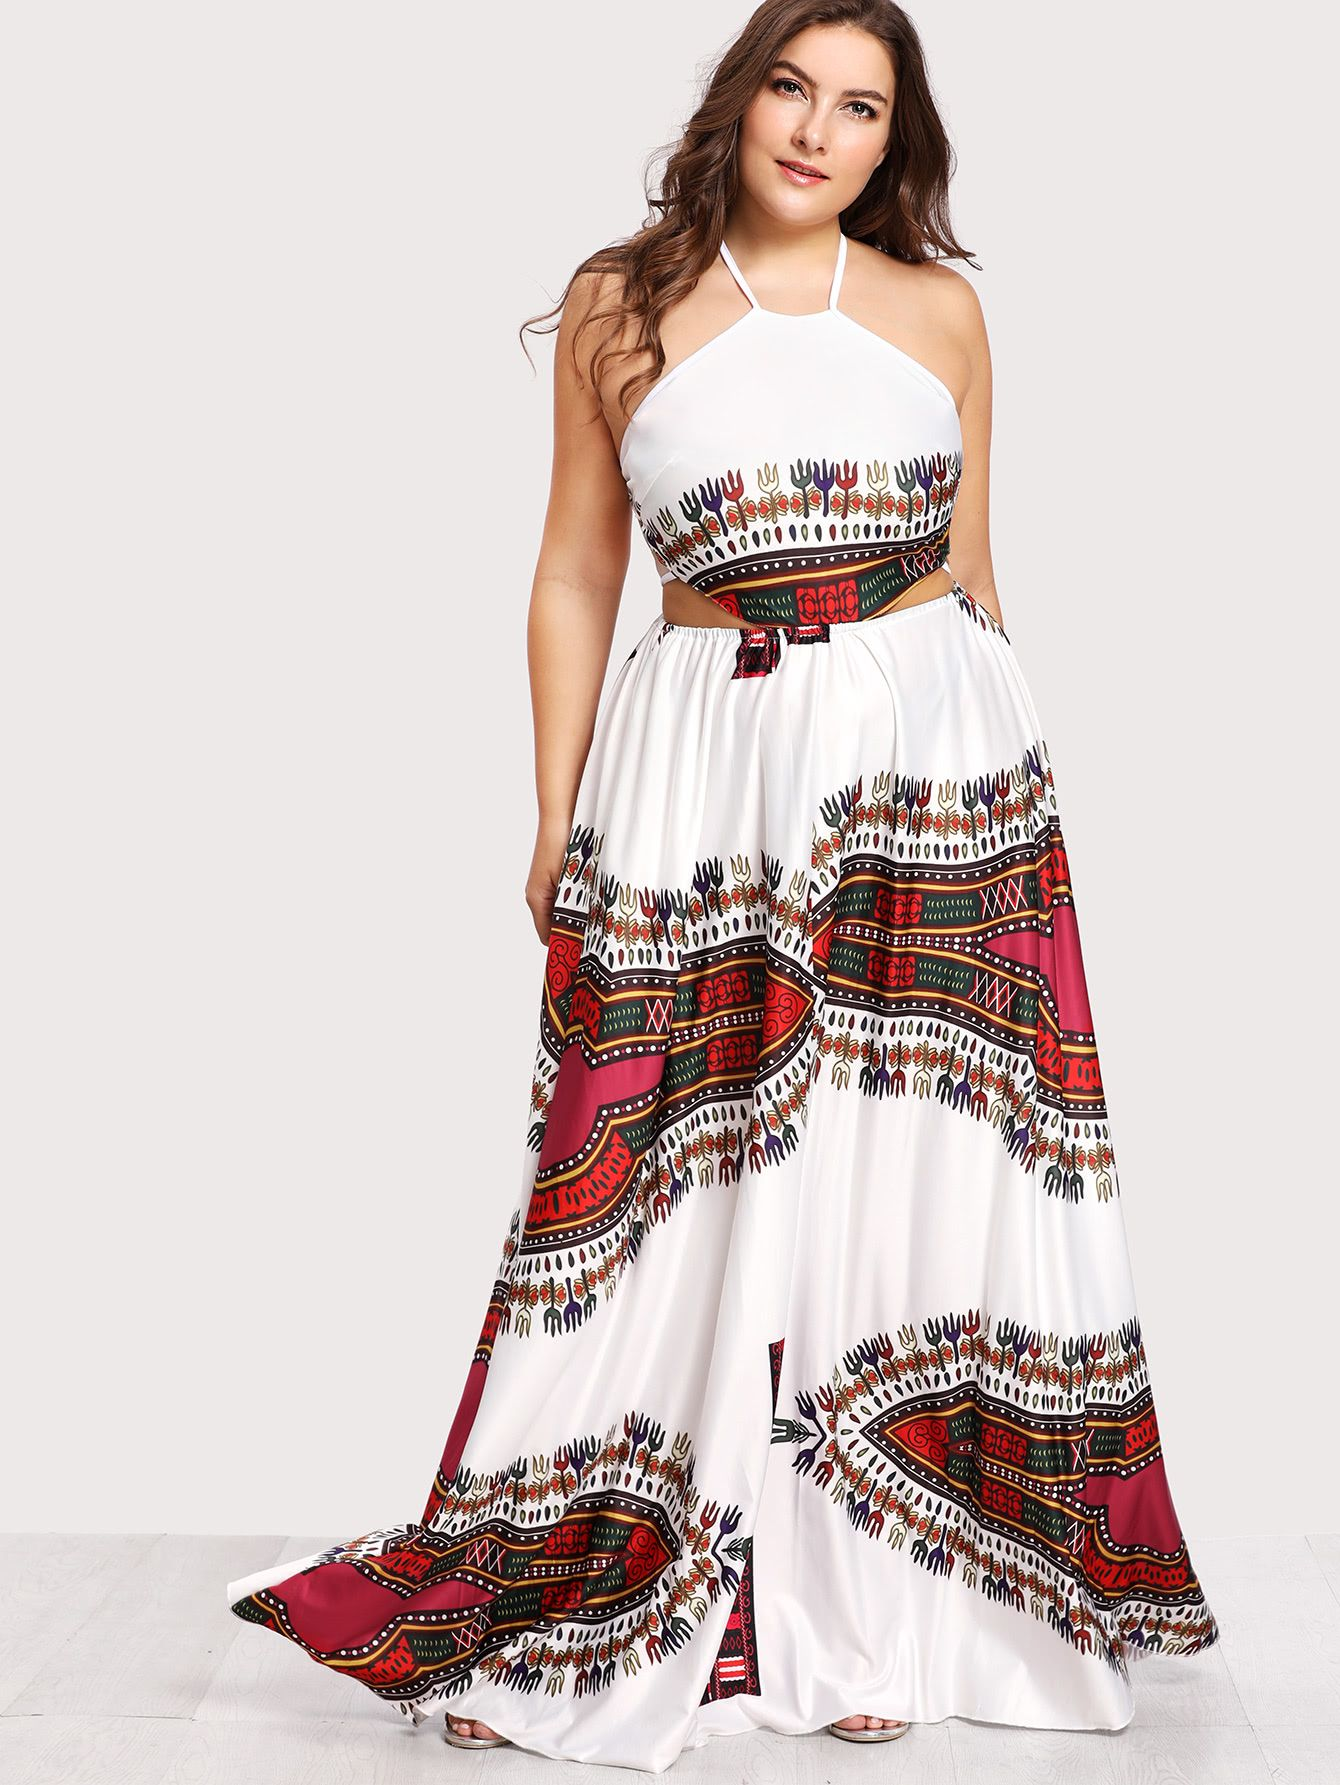 085703ae8f087 Shop Ornate Print Lace Up Backless Dress online. SheIn offers Ornate Print  Lace Up Backless Dress   more to fit your fashionable needs.